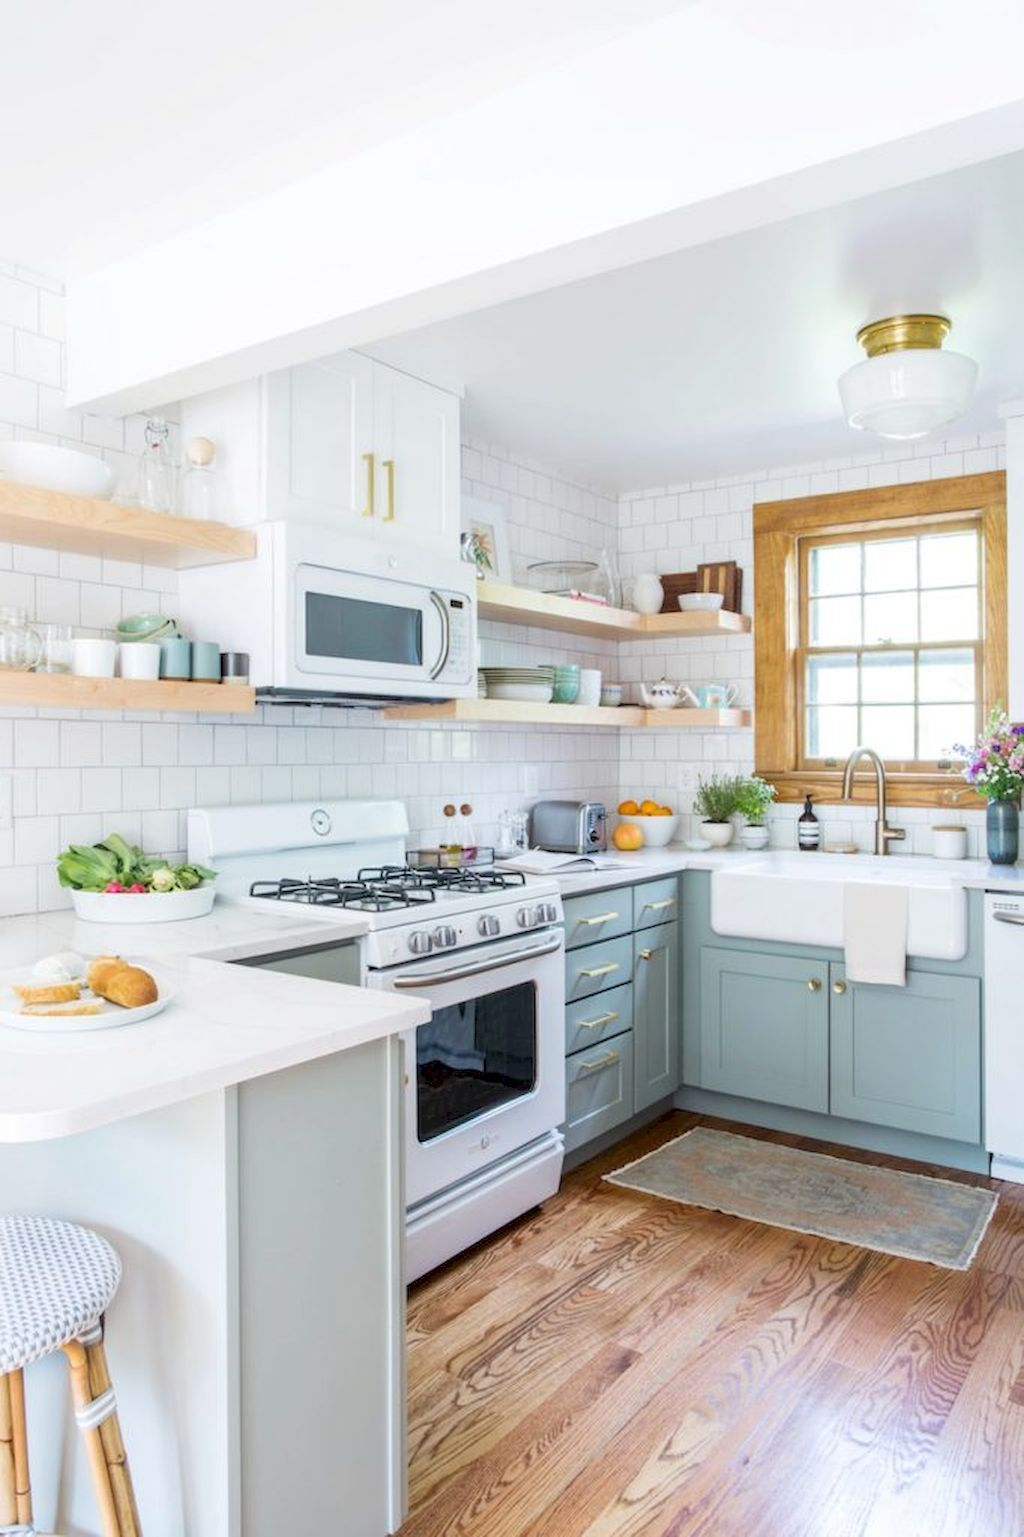 90 inspirations for small kitchen remodel ideas on a